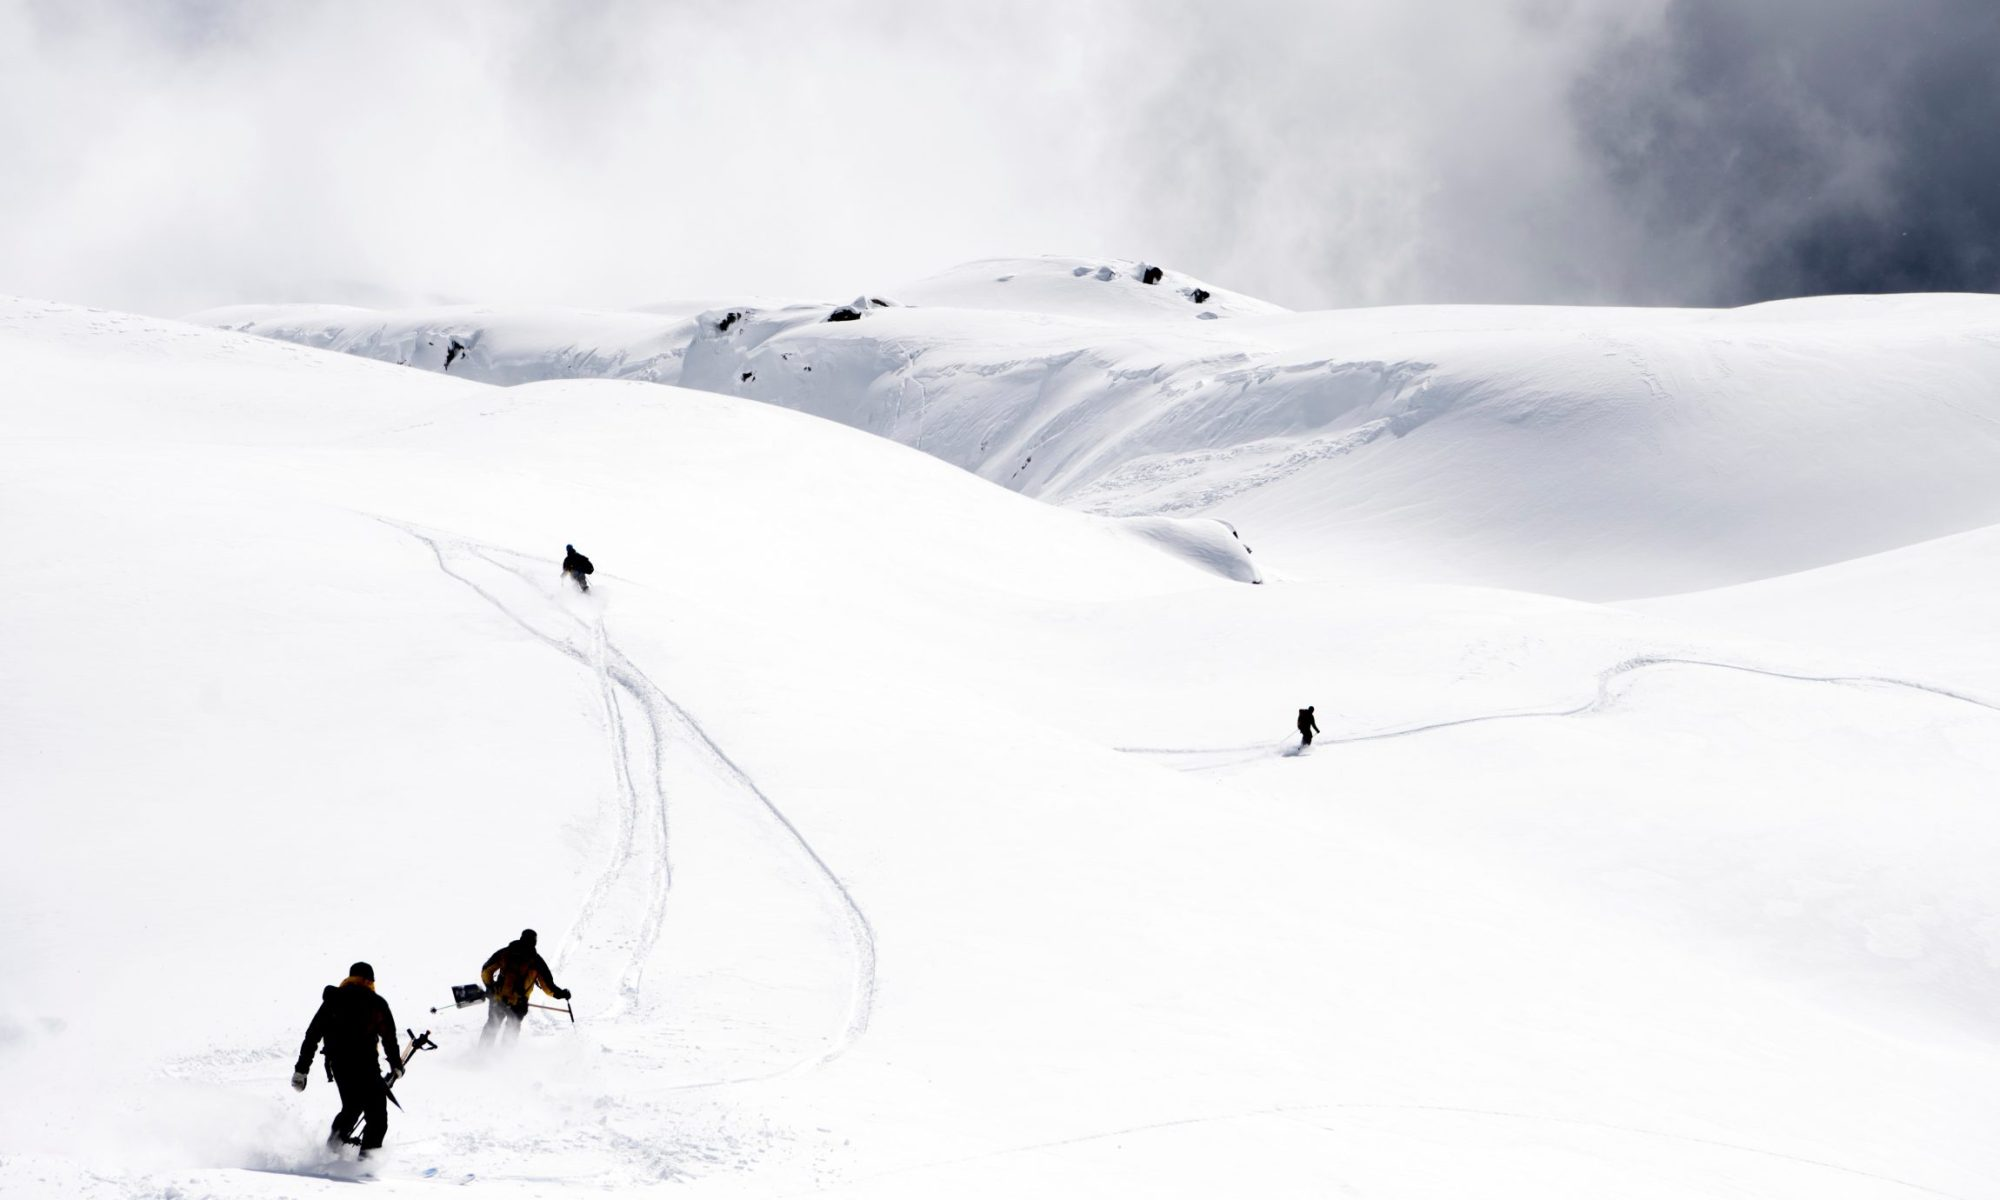 Photo by JEAN-CHRISTOPHE BOTT/EPA-EFE/REX/Shutterstock (9488635h) Rescue crews move into direction of the avalanche site to search for five hikers who were carried away on 31 March by an avalanche in Obers Taelli over the Fiescheralp, in Fiesch, Switzerland, 01 April 2018. An avalanche reportedly 'carried away' five people on 31 March in Fiesch in the Swiss Upper Valais region. Police said on 01 April that three persons were killed and two others were injured. Rescue works after avalanche in Swiss Alps, Fiesch, Switzerland - 01 Apr 2018. Three Spaniard Skiers have died and two others are injured in Switzerland after an avalanche.